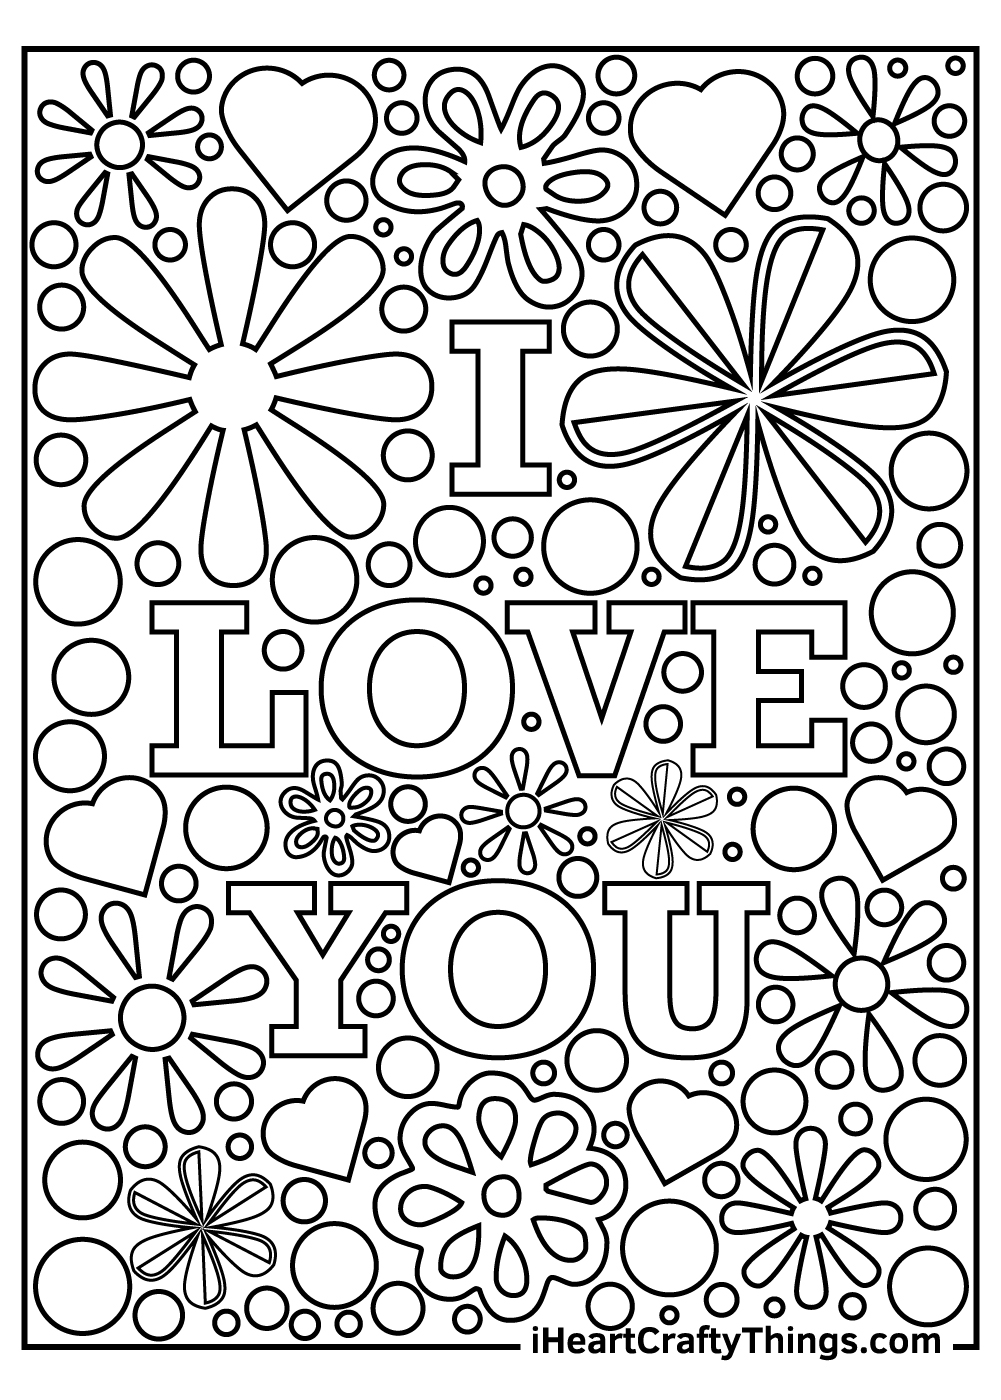 I Love You mom coloring pages free to print out